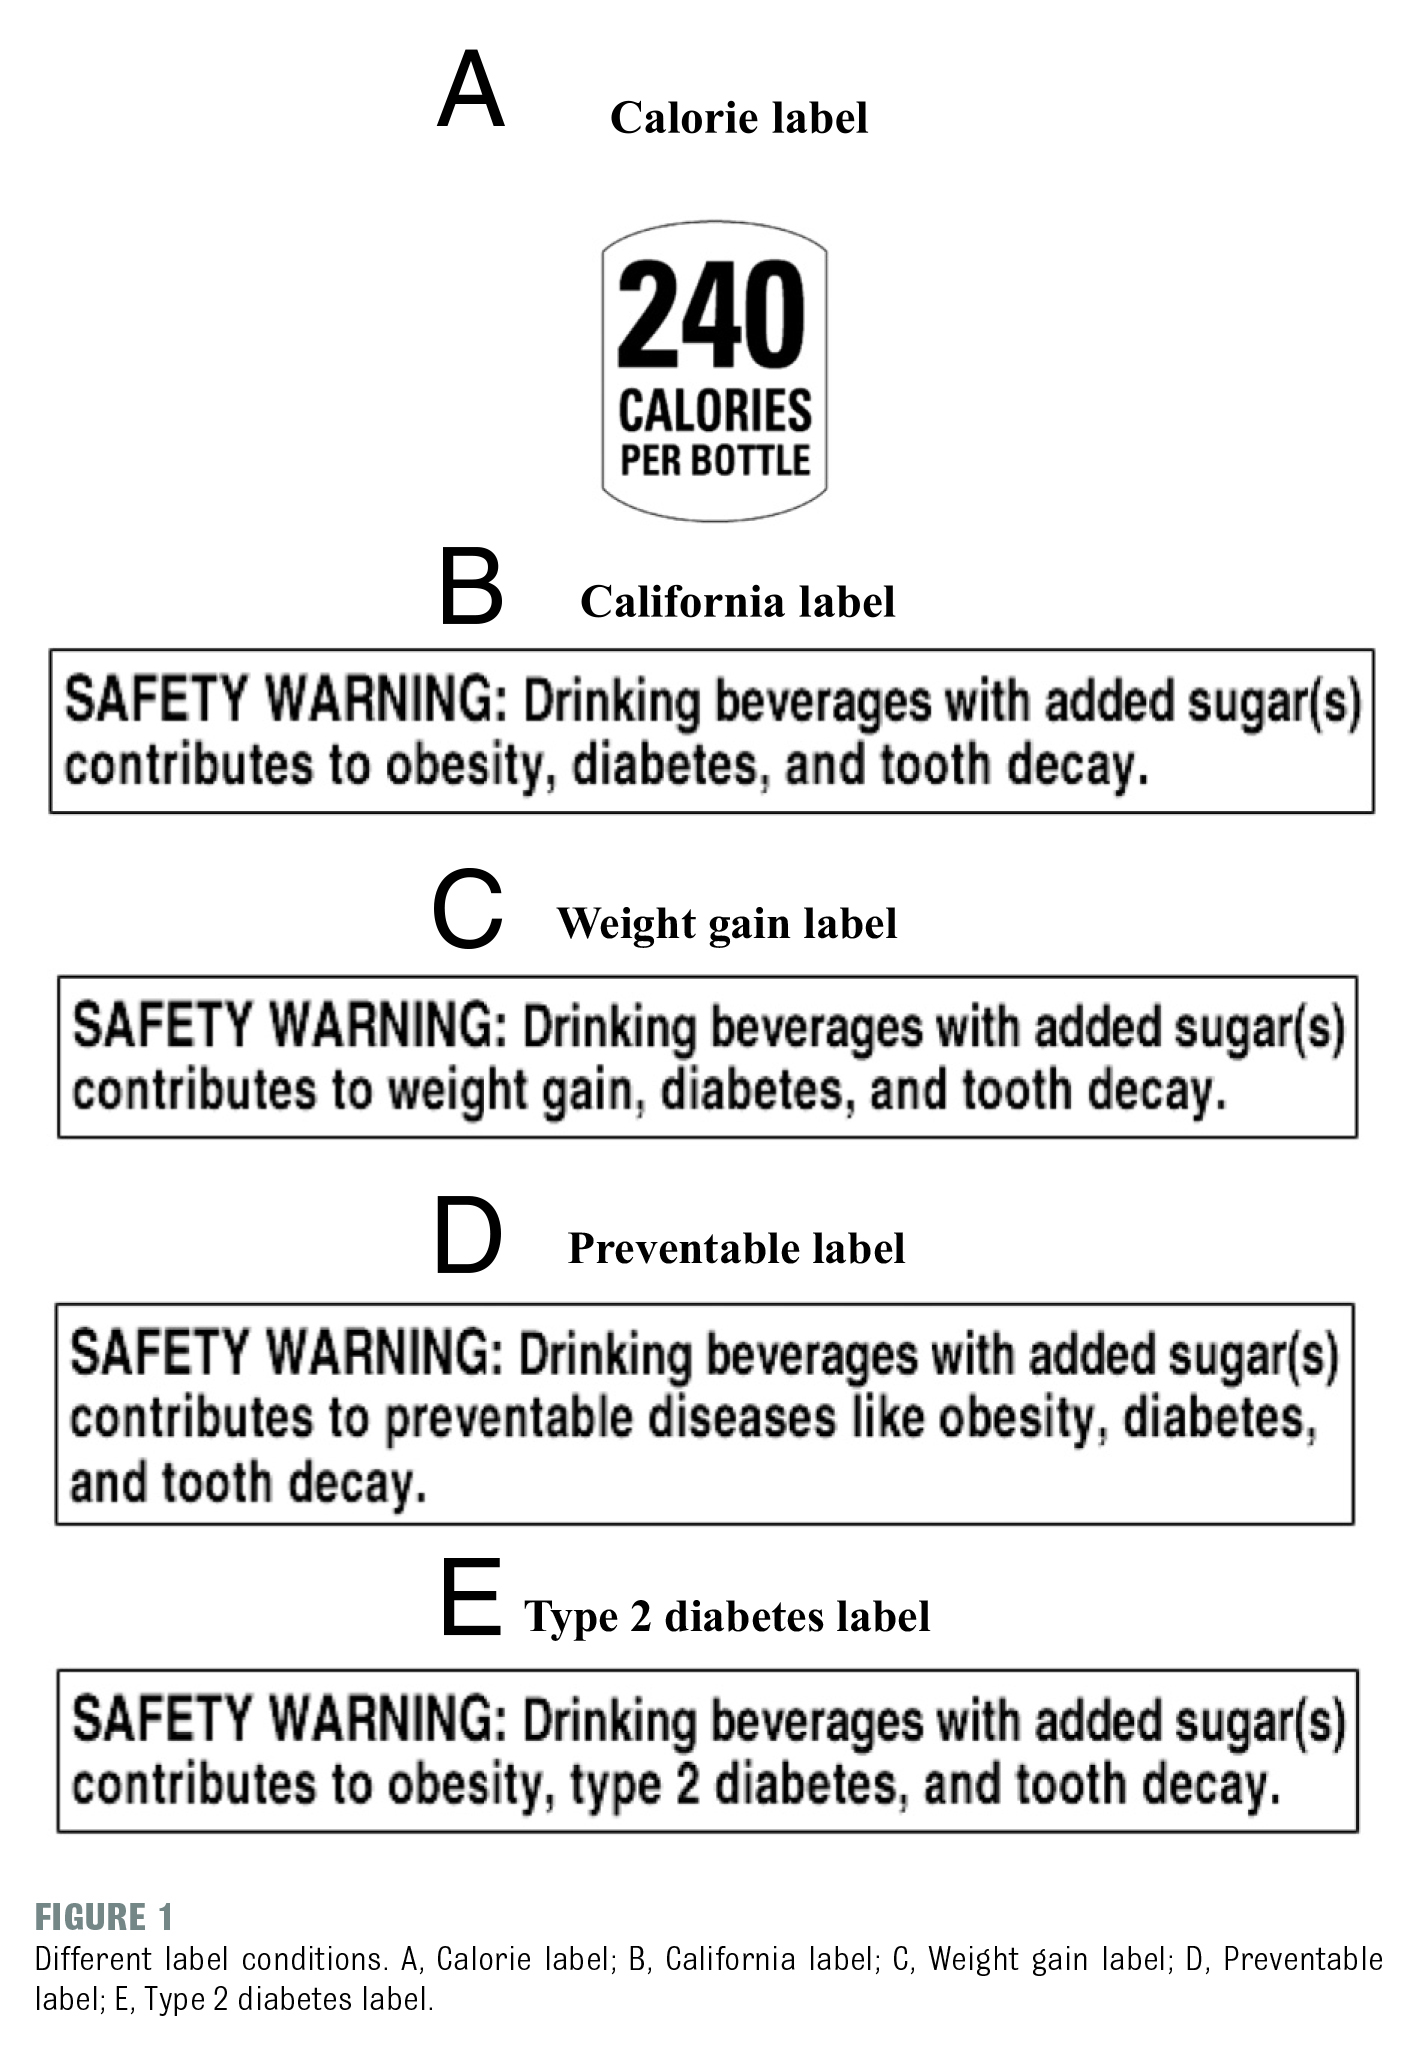 Health Warning Labels May Deter Parents From Purchasing